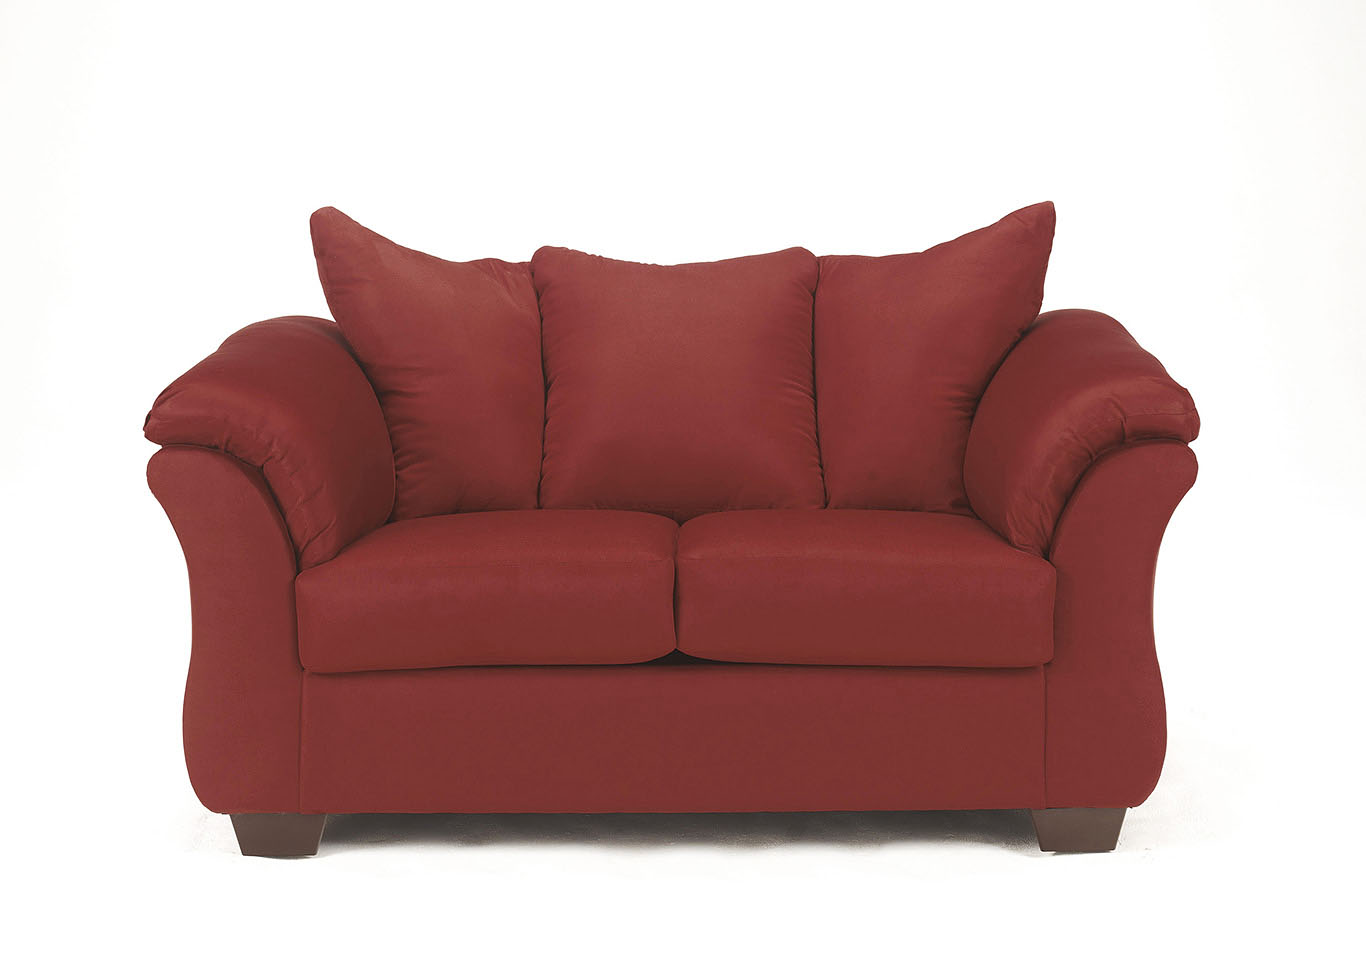 Darcy Salsa Loveseat,ABF Signature Design by Ashley